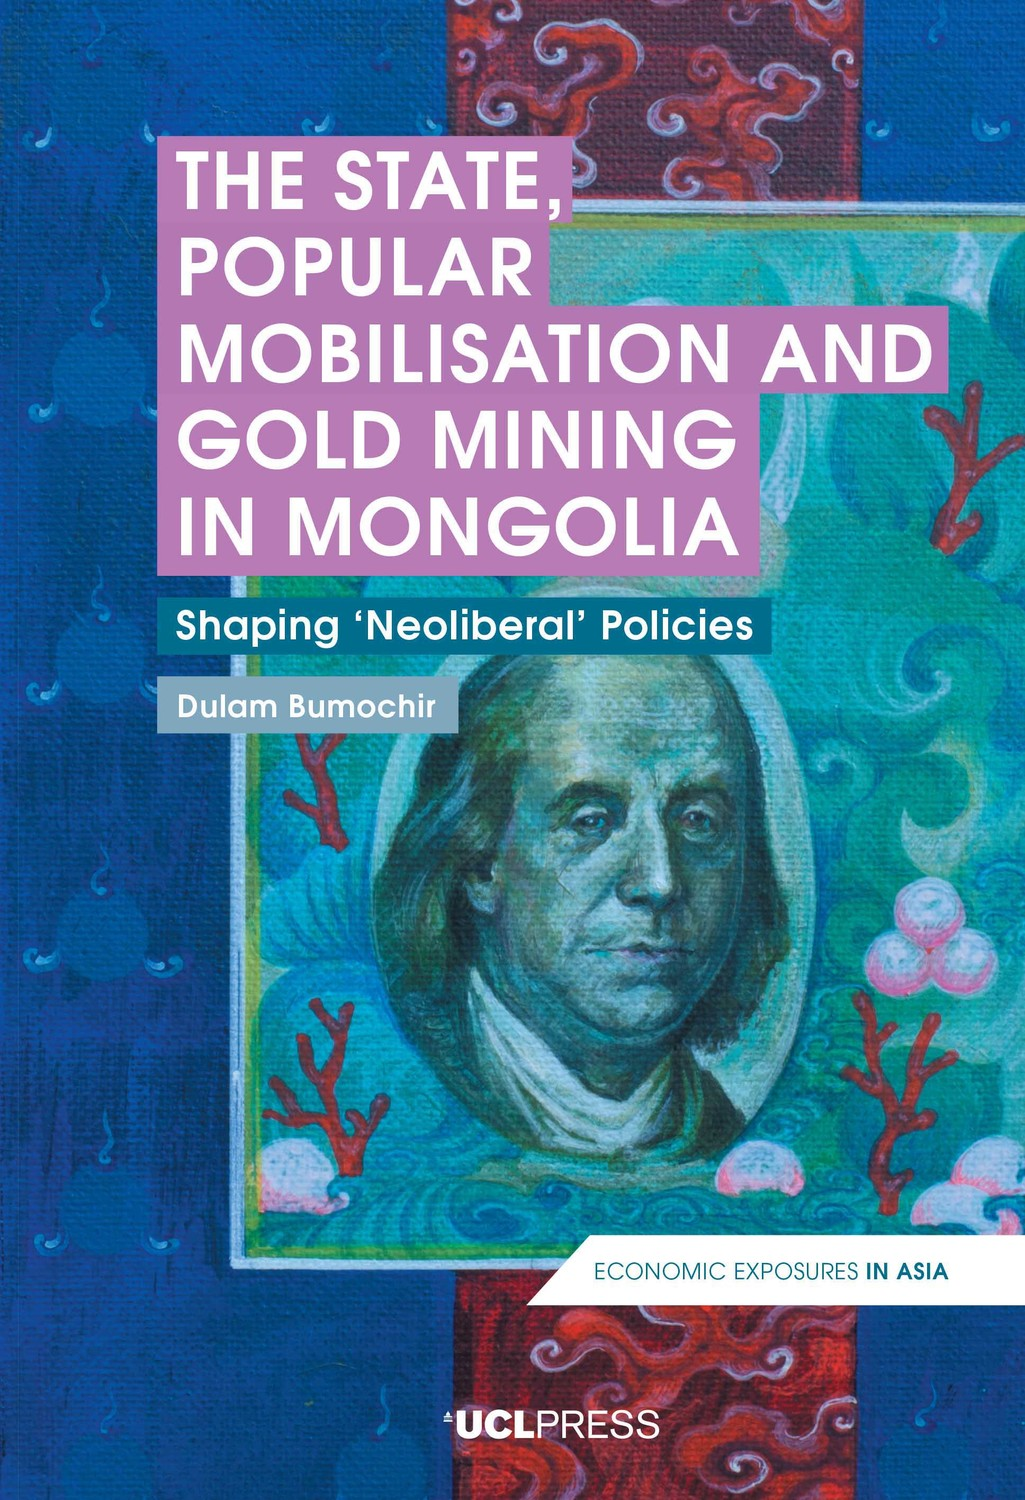 The State, Popular Mobilisation and Gold Mining in Mongolia